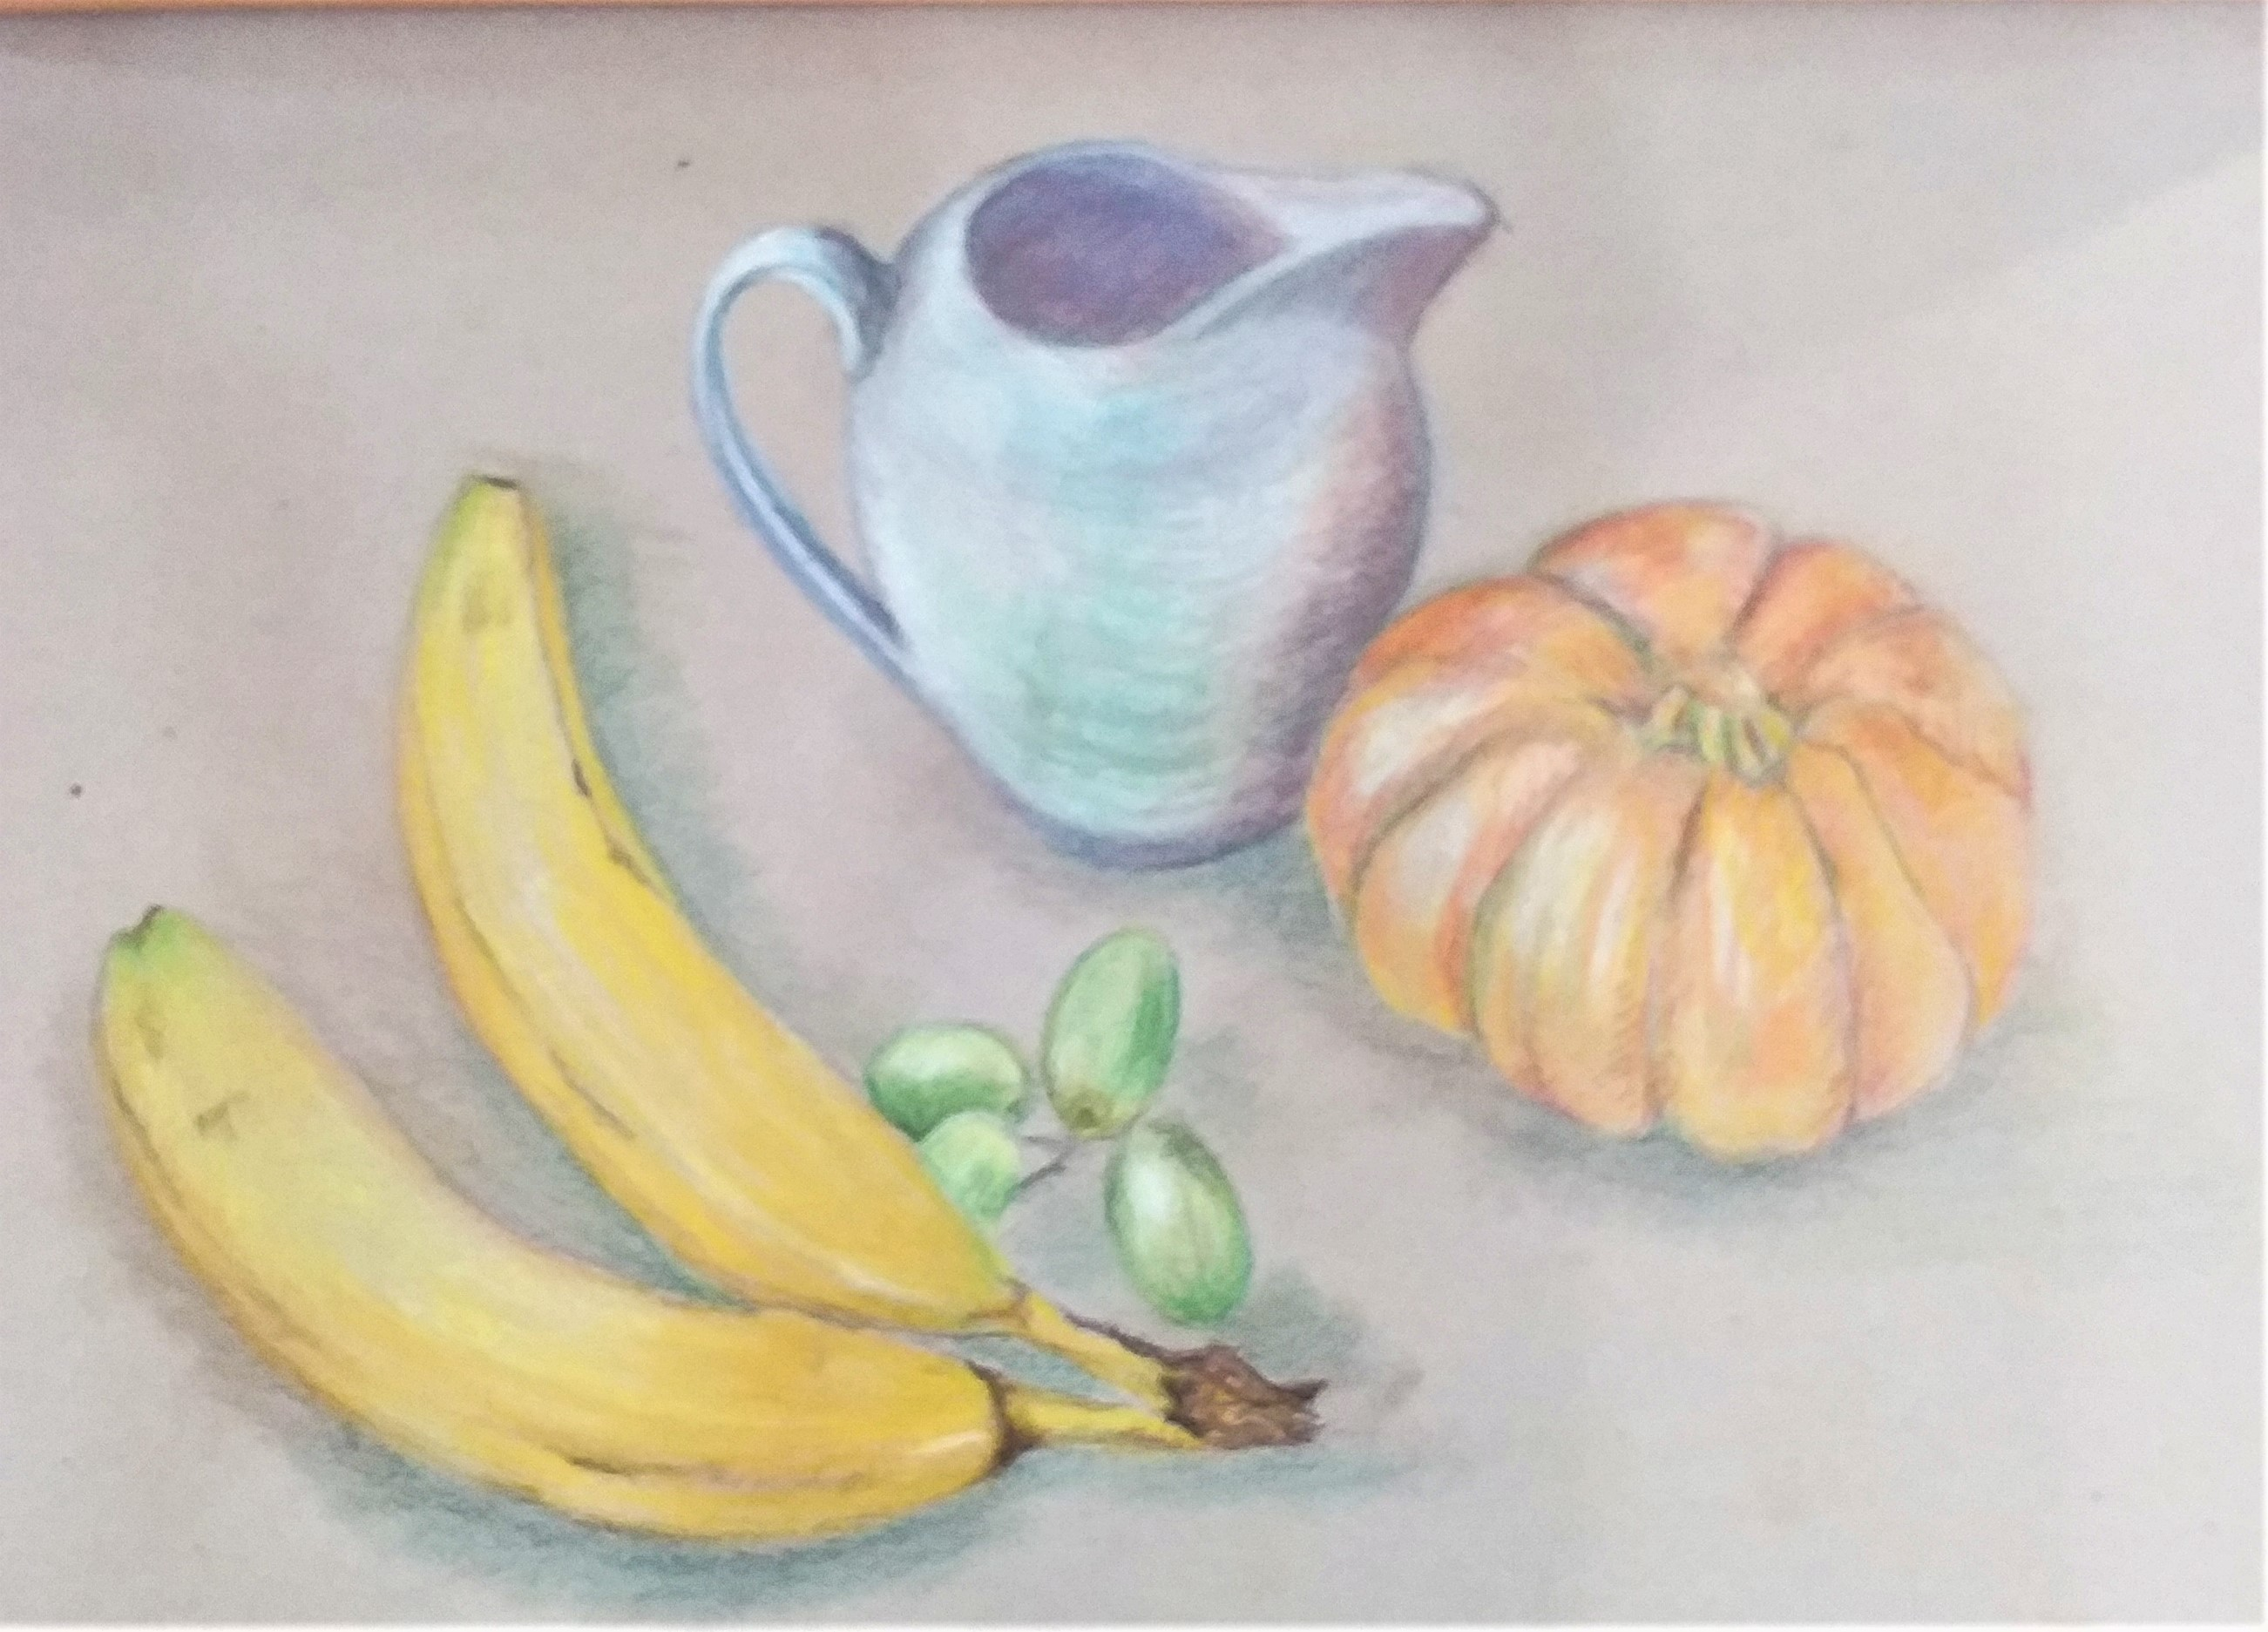 Pastel drawing of a Still life created by a student at art course in Kidderminster Worcestershire